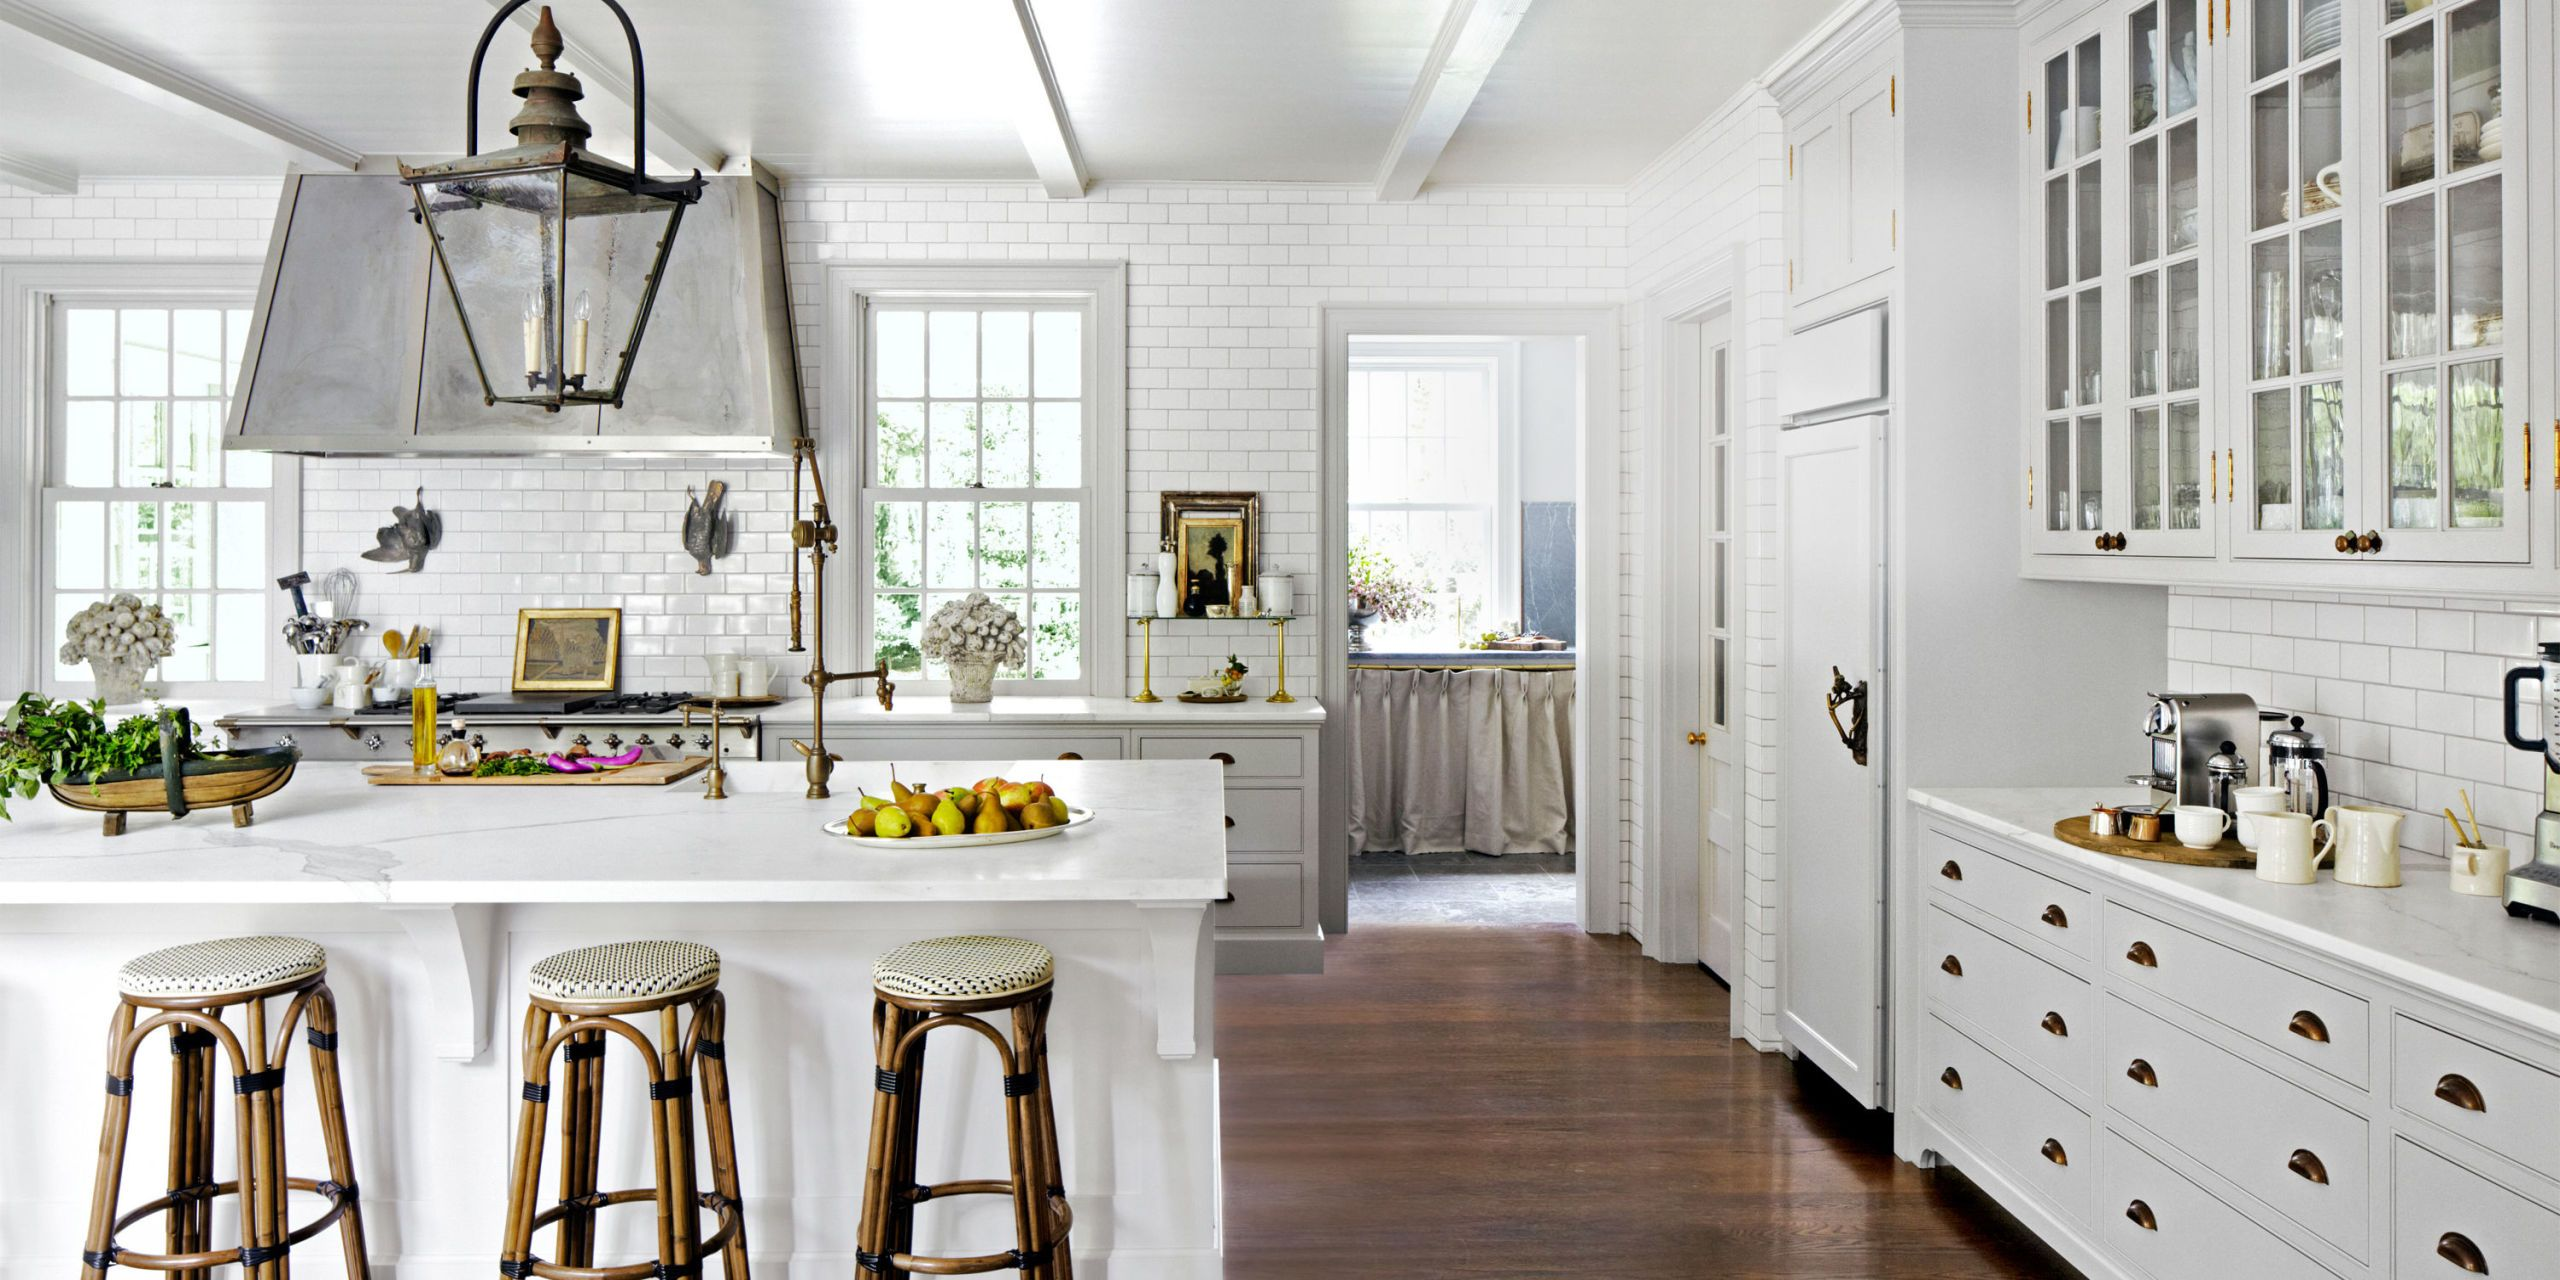 Merveilleux Amazing Ideas For Using White To Spruce Up Your Kitchen Decor And Take It  From Drab To Dazzling.